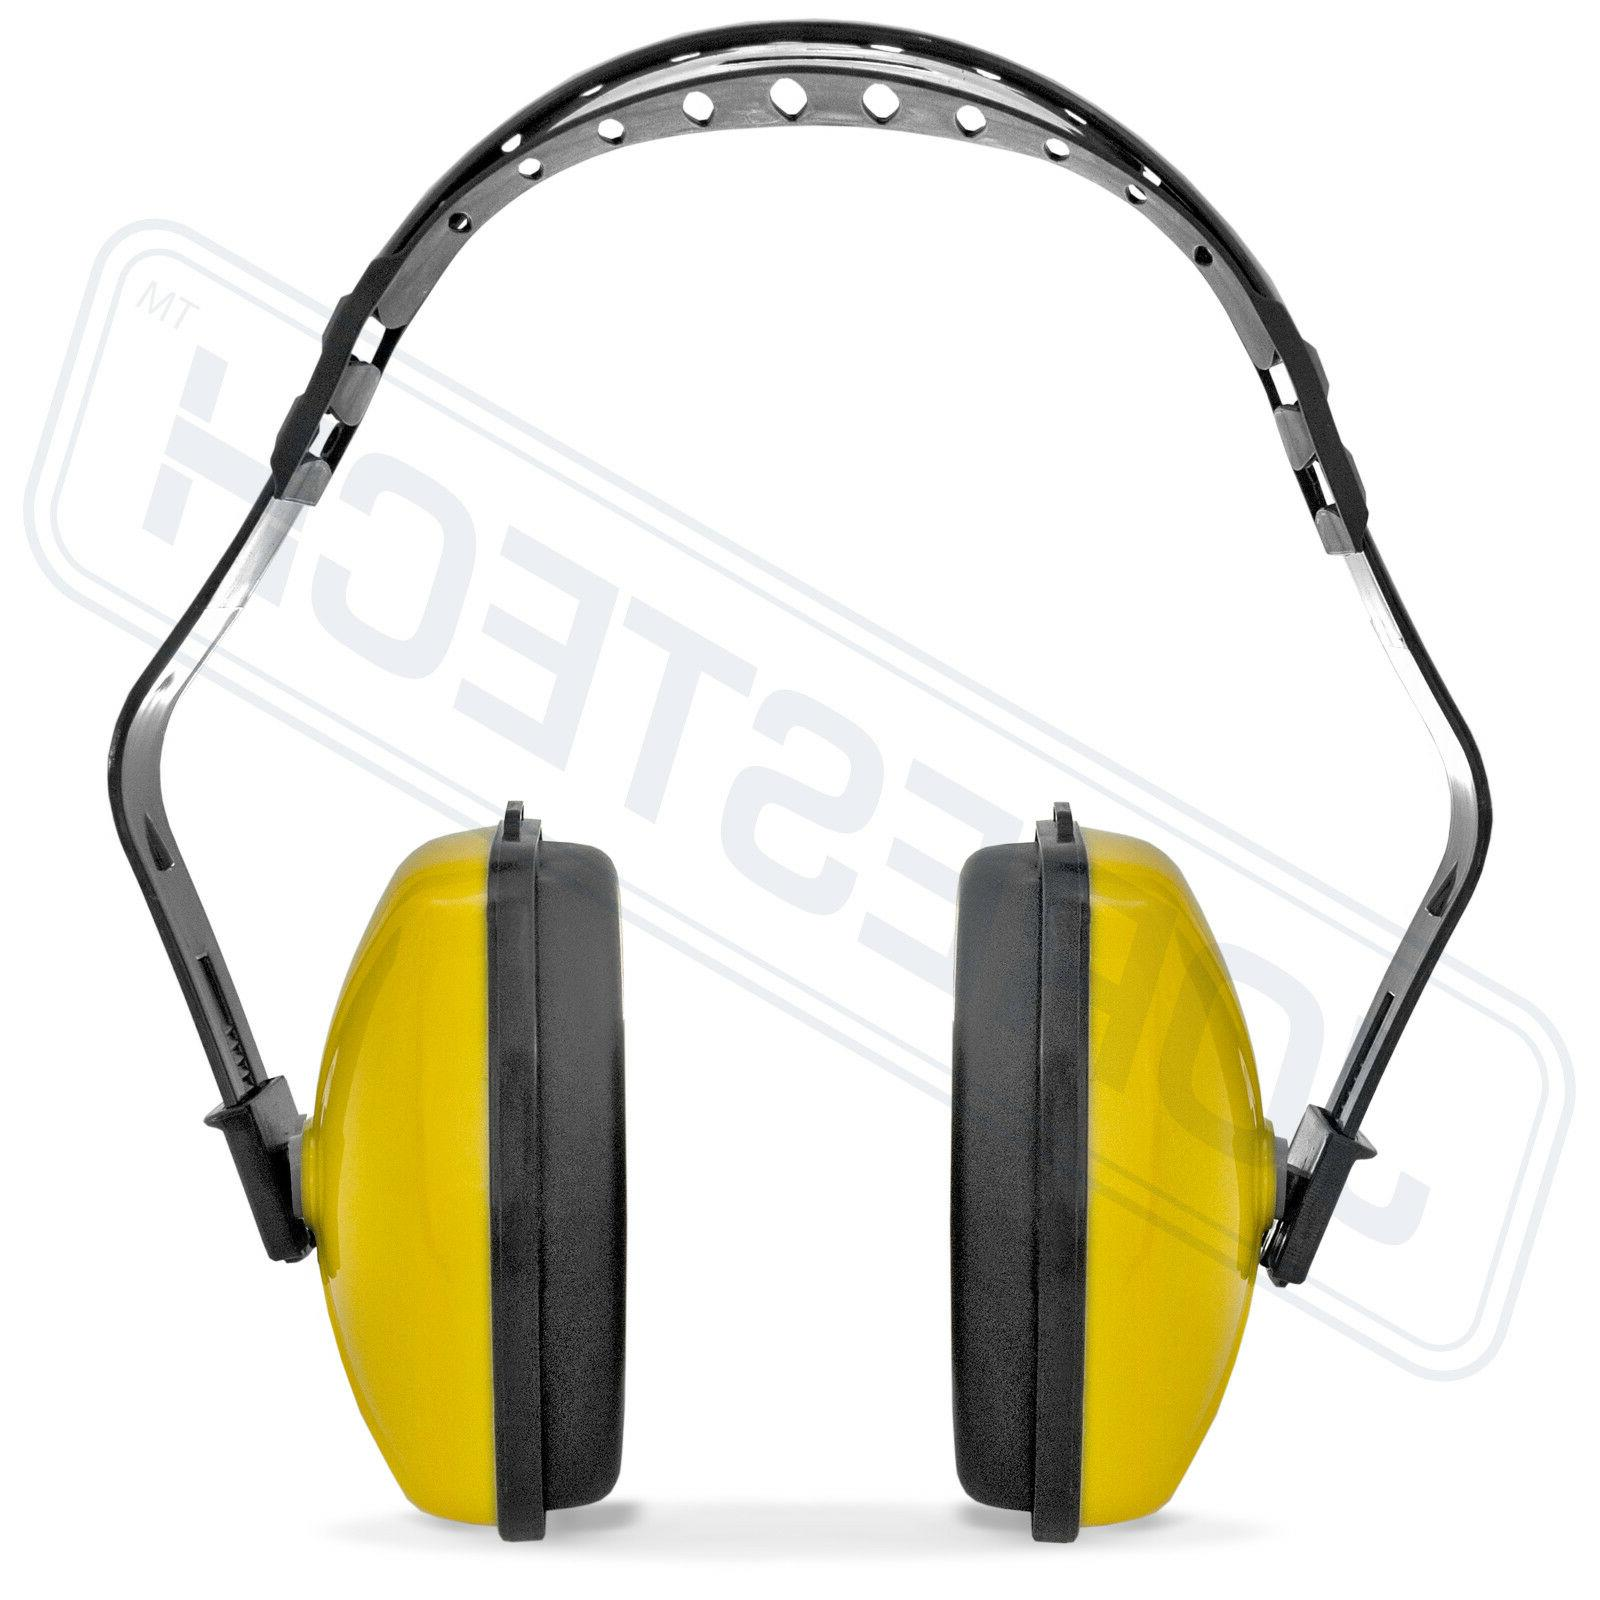 Hearing Muffs Construction Jorestech